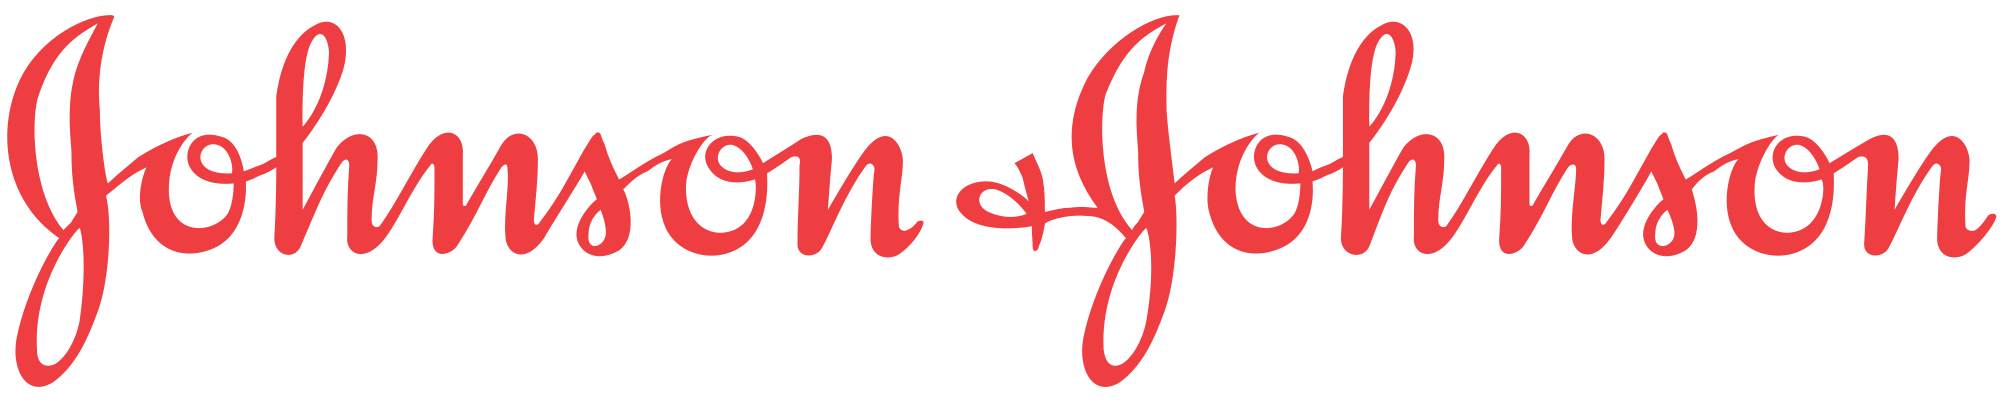 Logotipo Johnson & Johnson